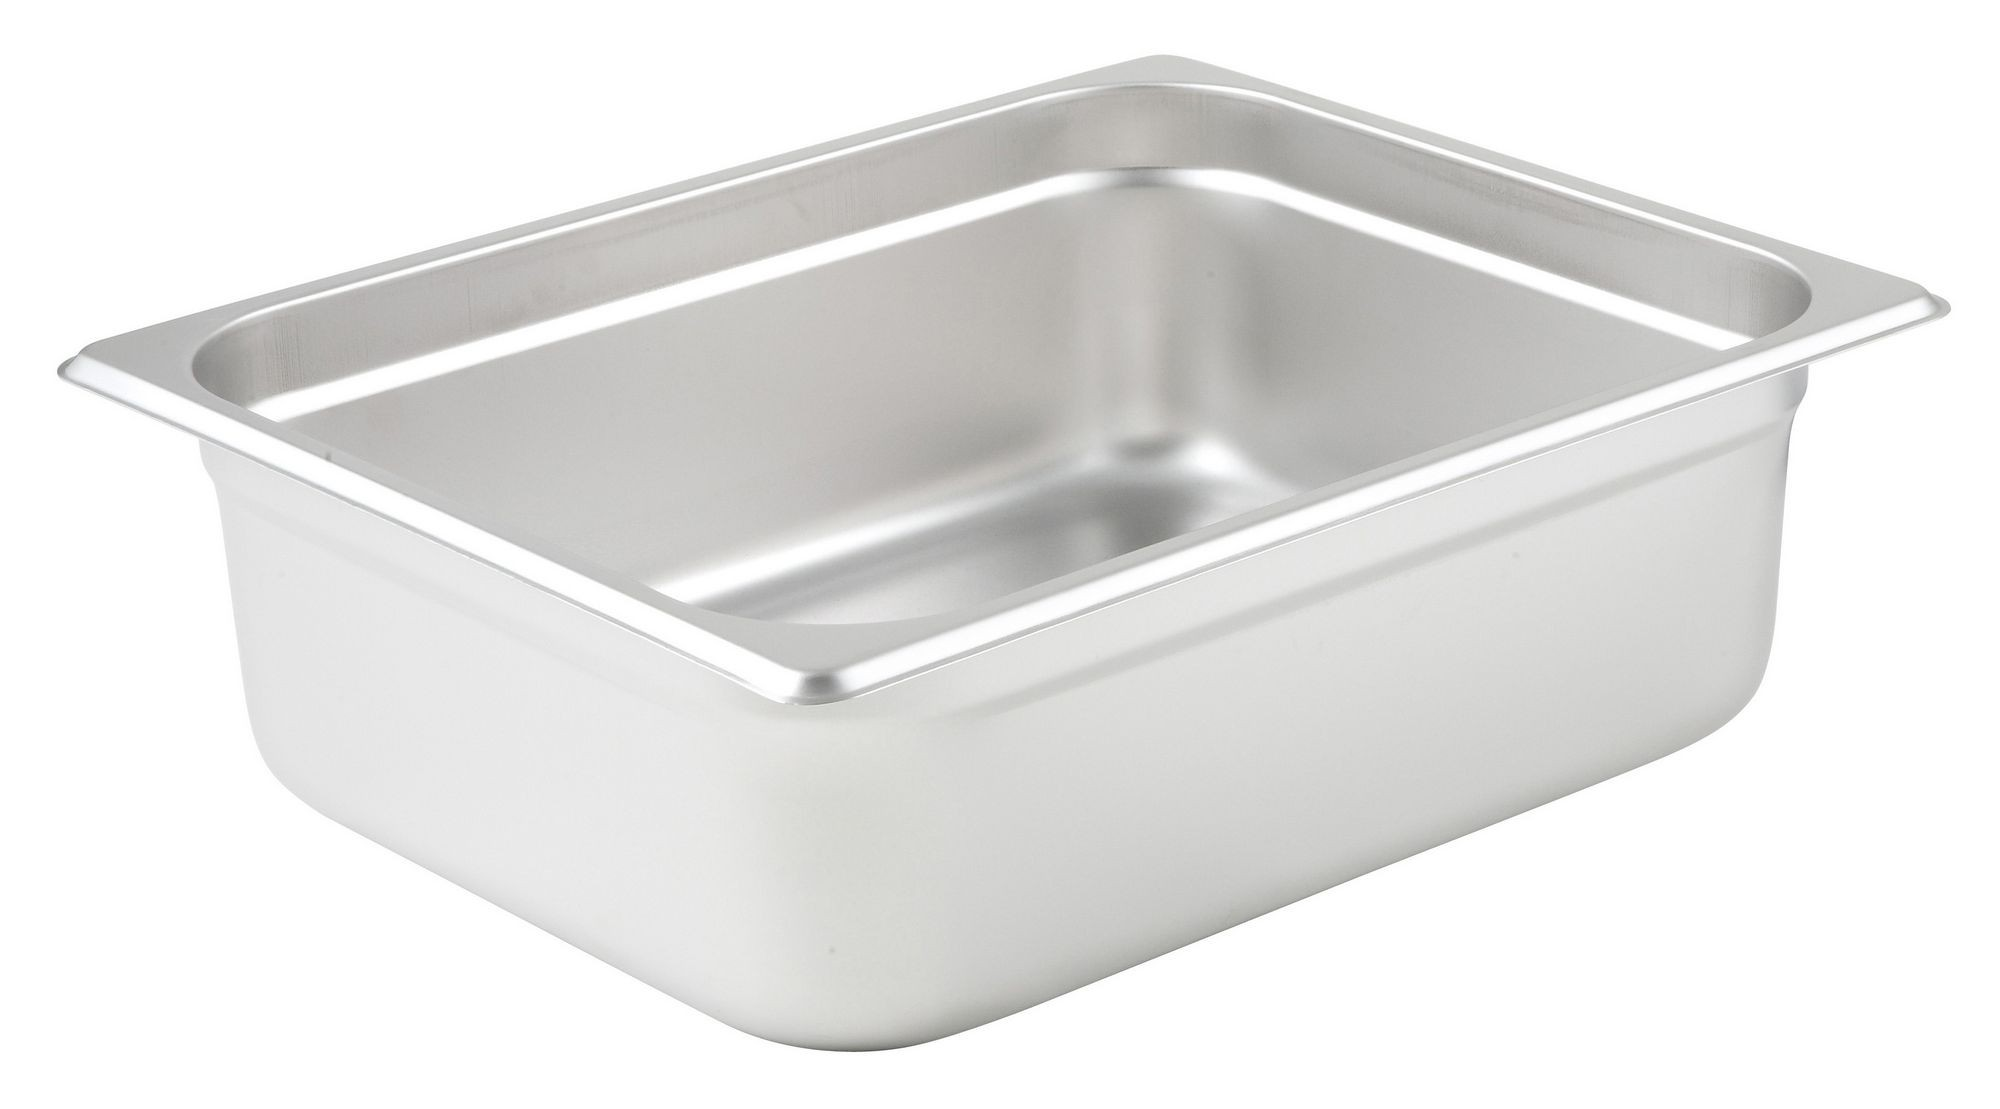 "Winco Spjm-204 1/2 Size Anti-Jam 24 Gauge Steam Table Pan 4"" Deep"